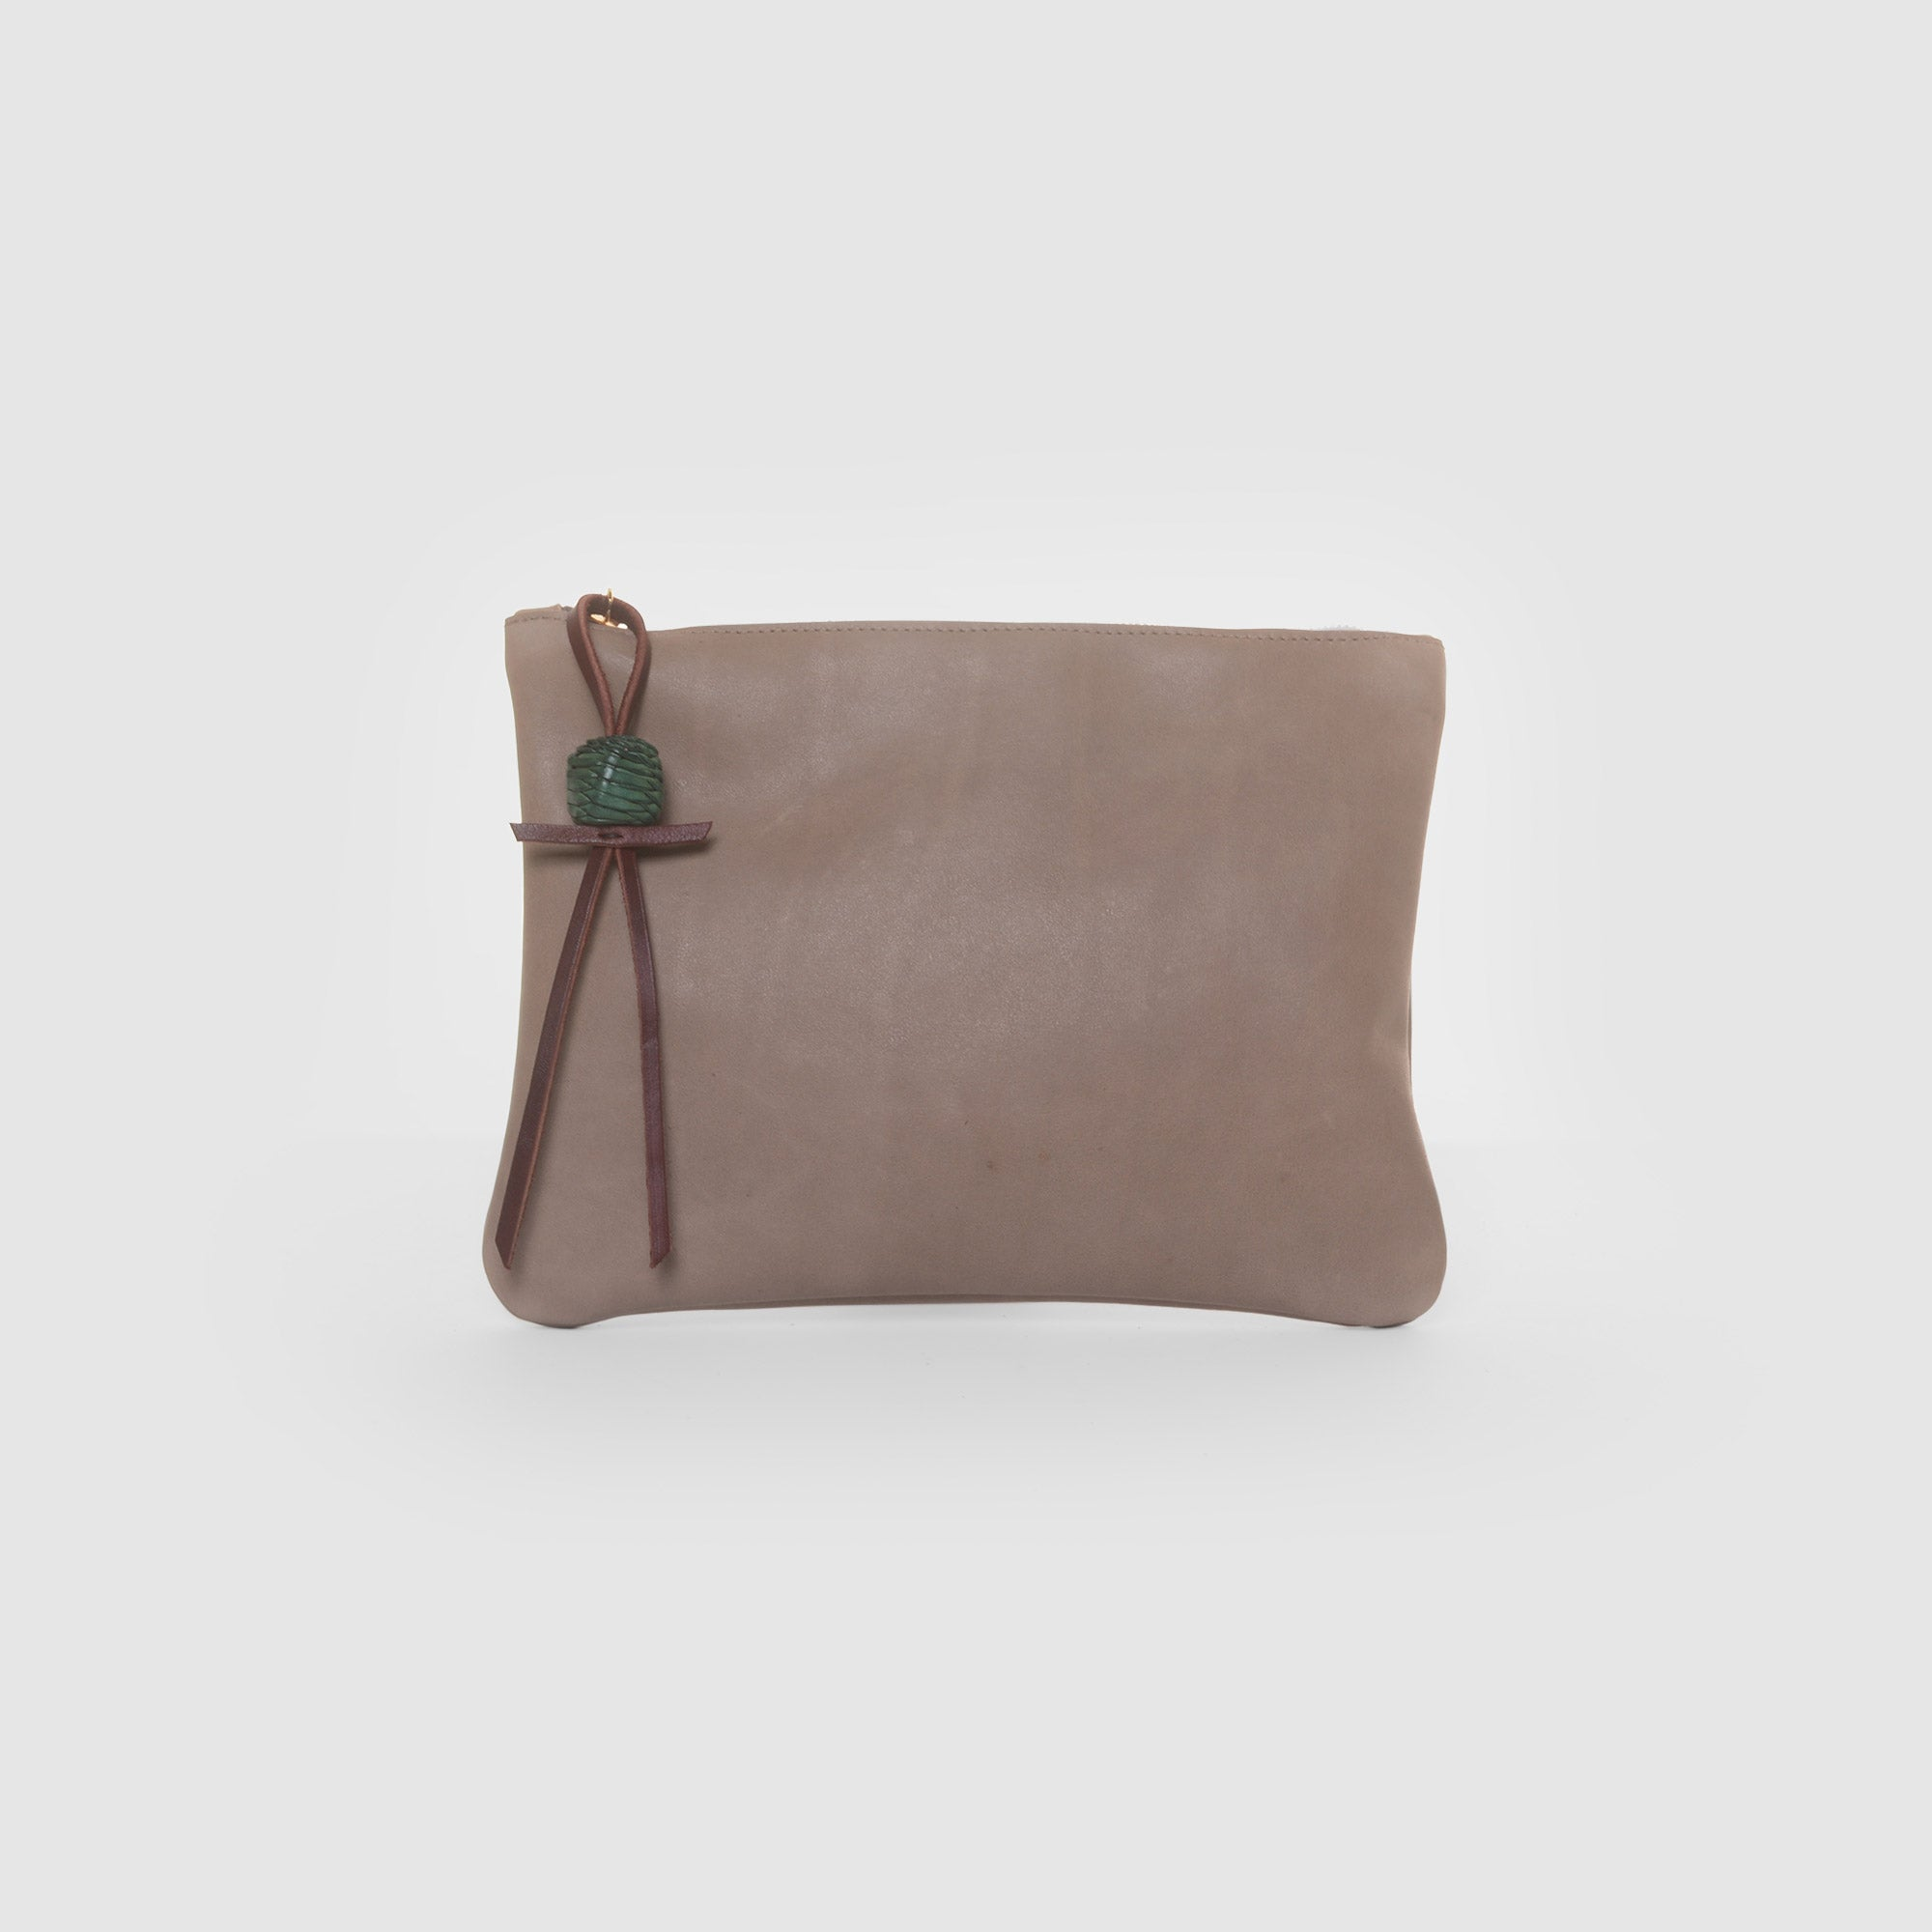 BOULE DE CUIRE CLUTCH  //  CLAY & EMERALD